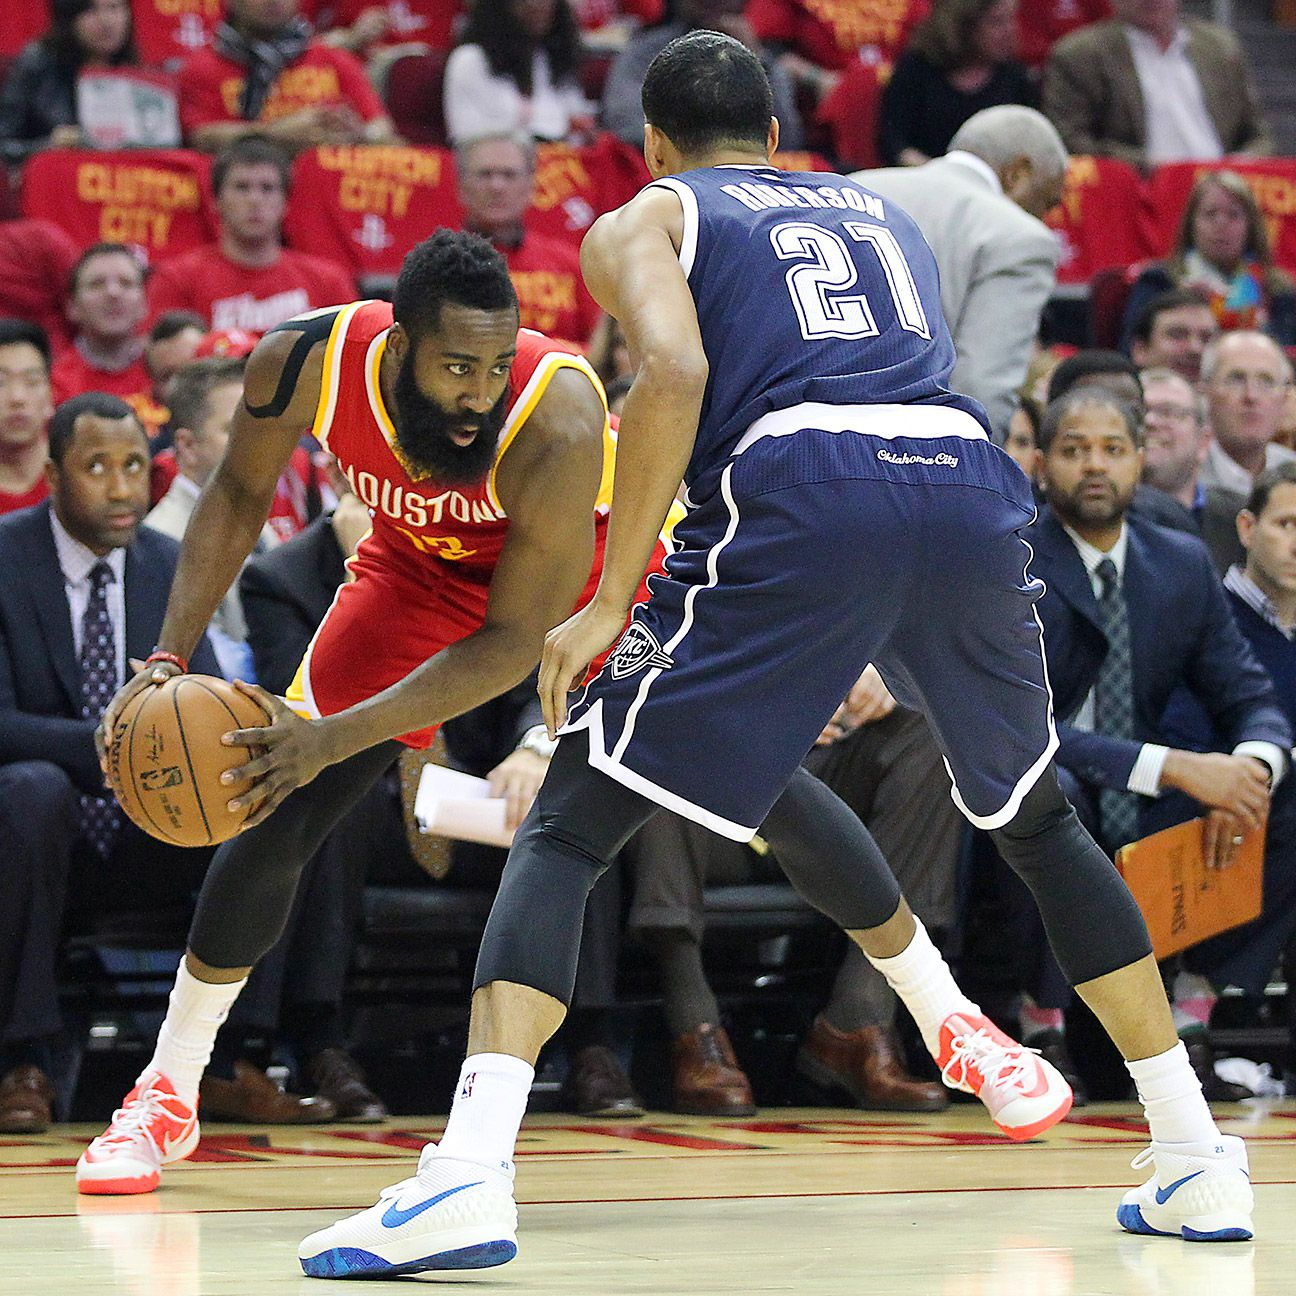 James Harden Free Agency: James Harden Keeps Growing His Game For Houston Rockets